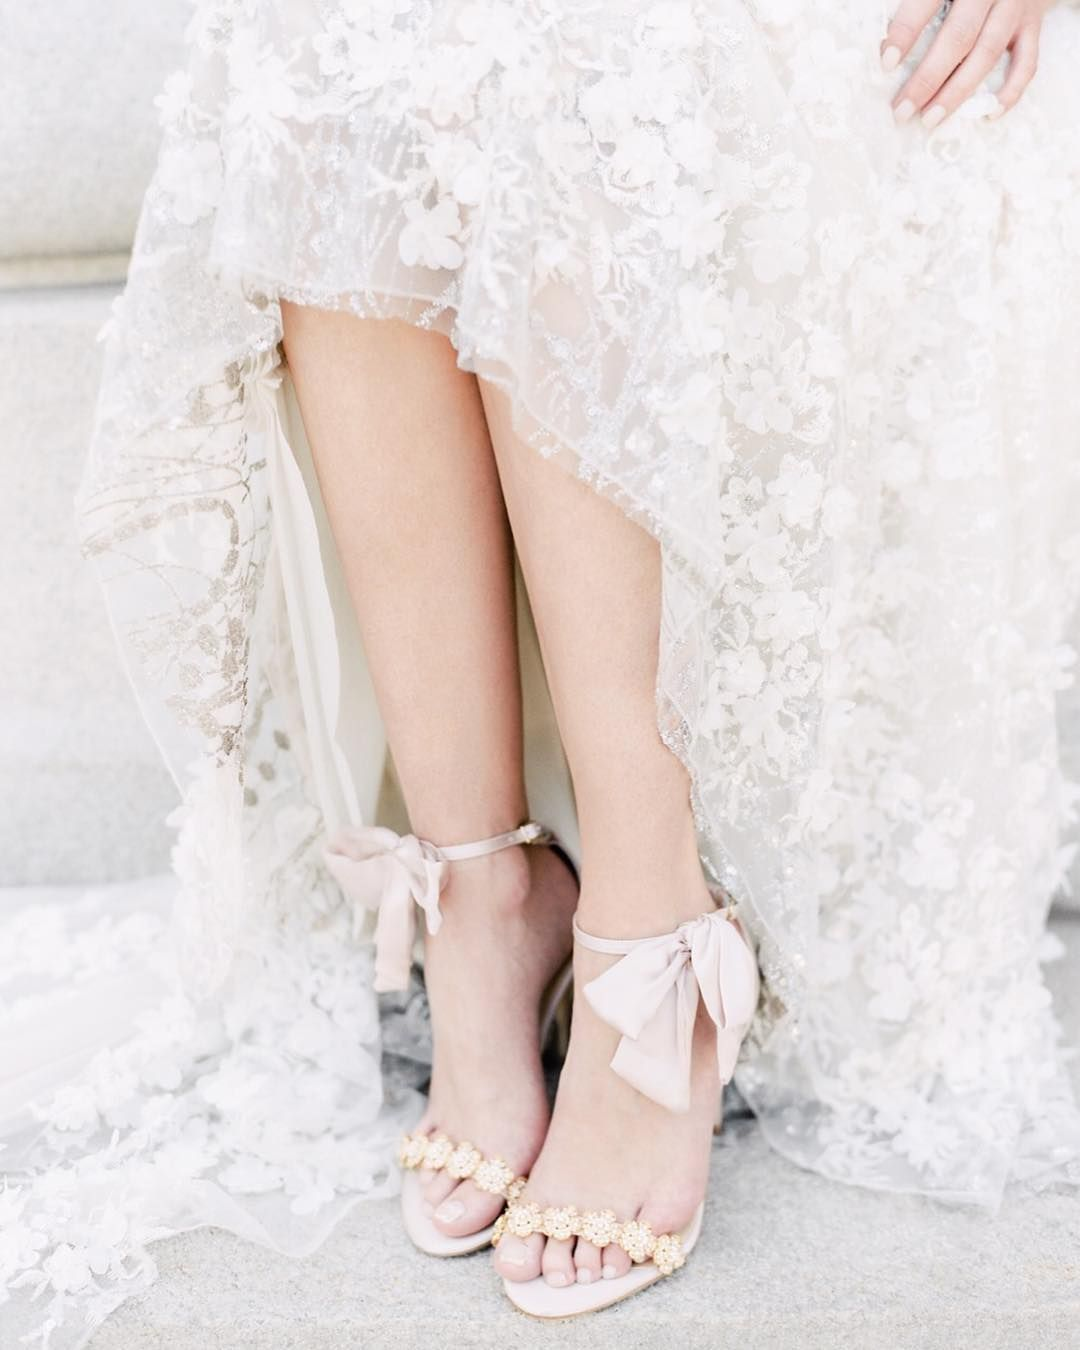 Bella Belle Shoes On Instagram A Blush Silk Bow Adds Elegance To